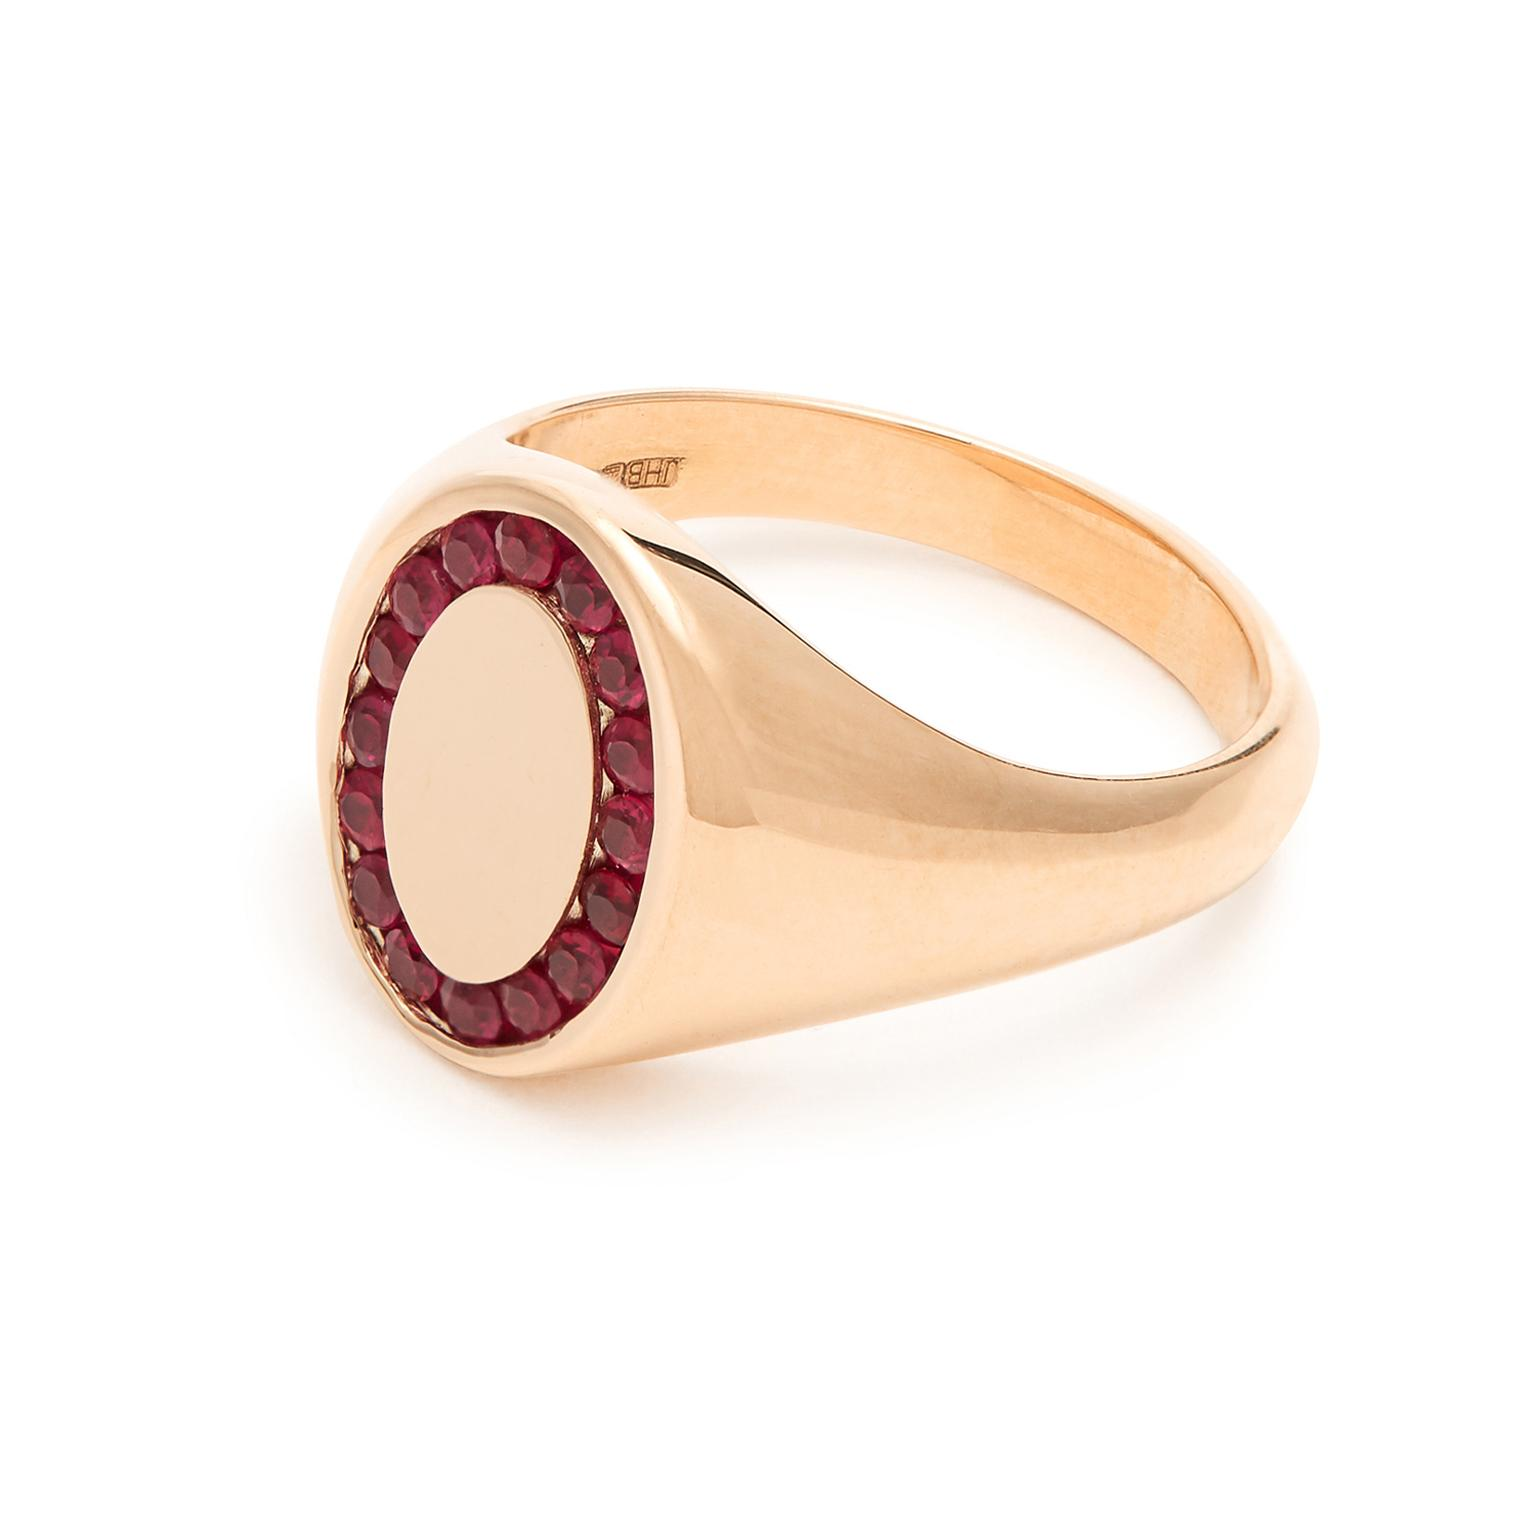 Jessica Biales Candy ruby signet ring